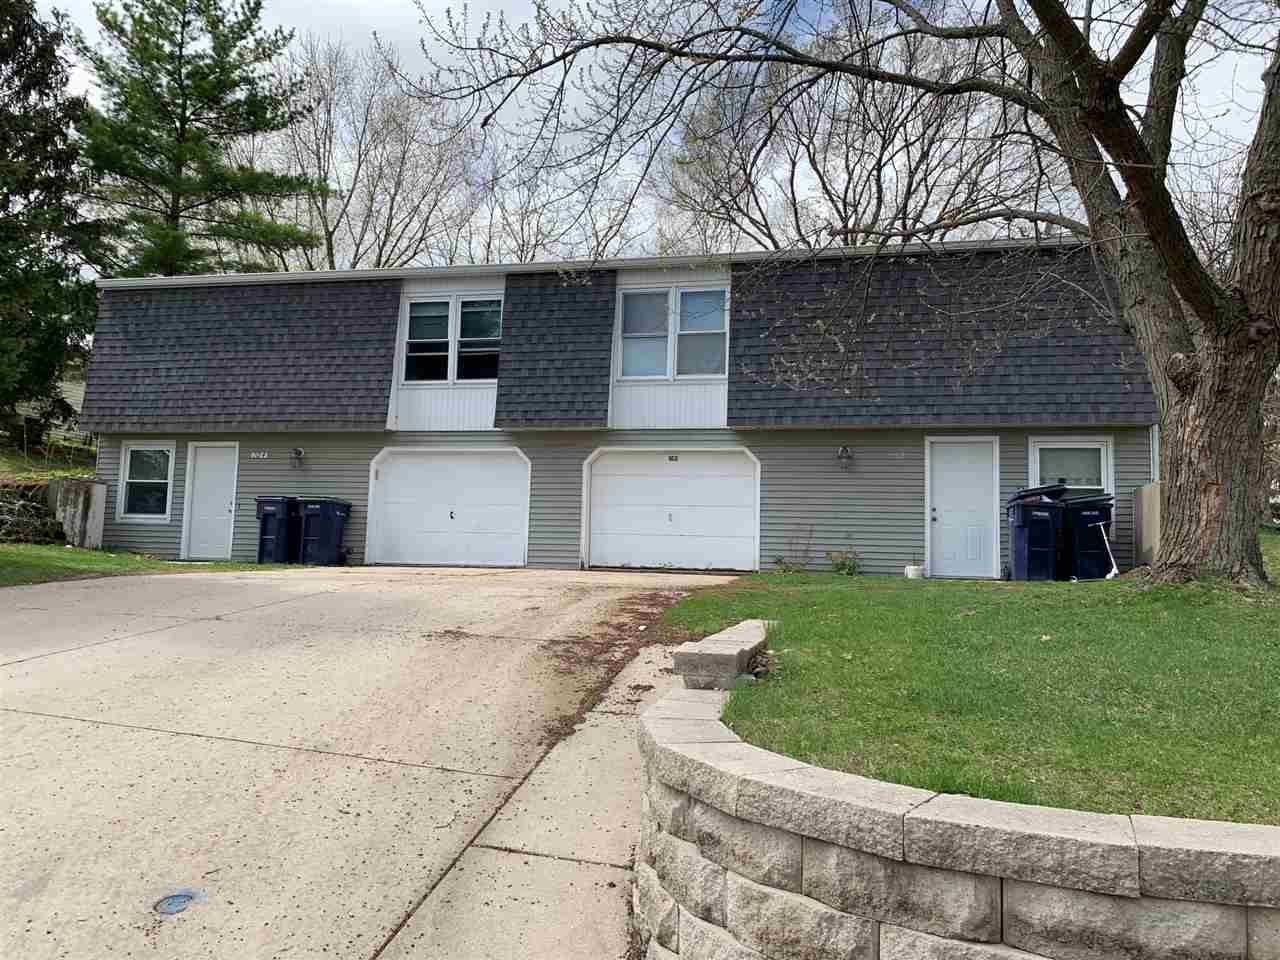 102 - 104 S Wright Rd, Janesville, WI 53546 - #: 1906889